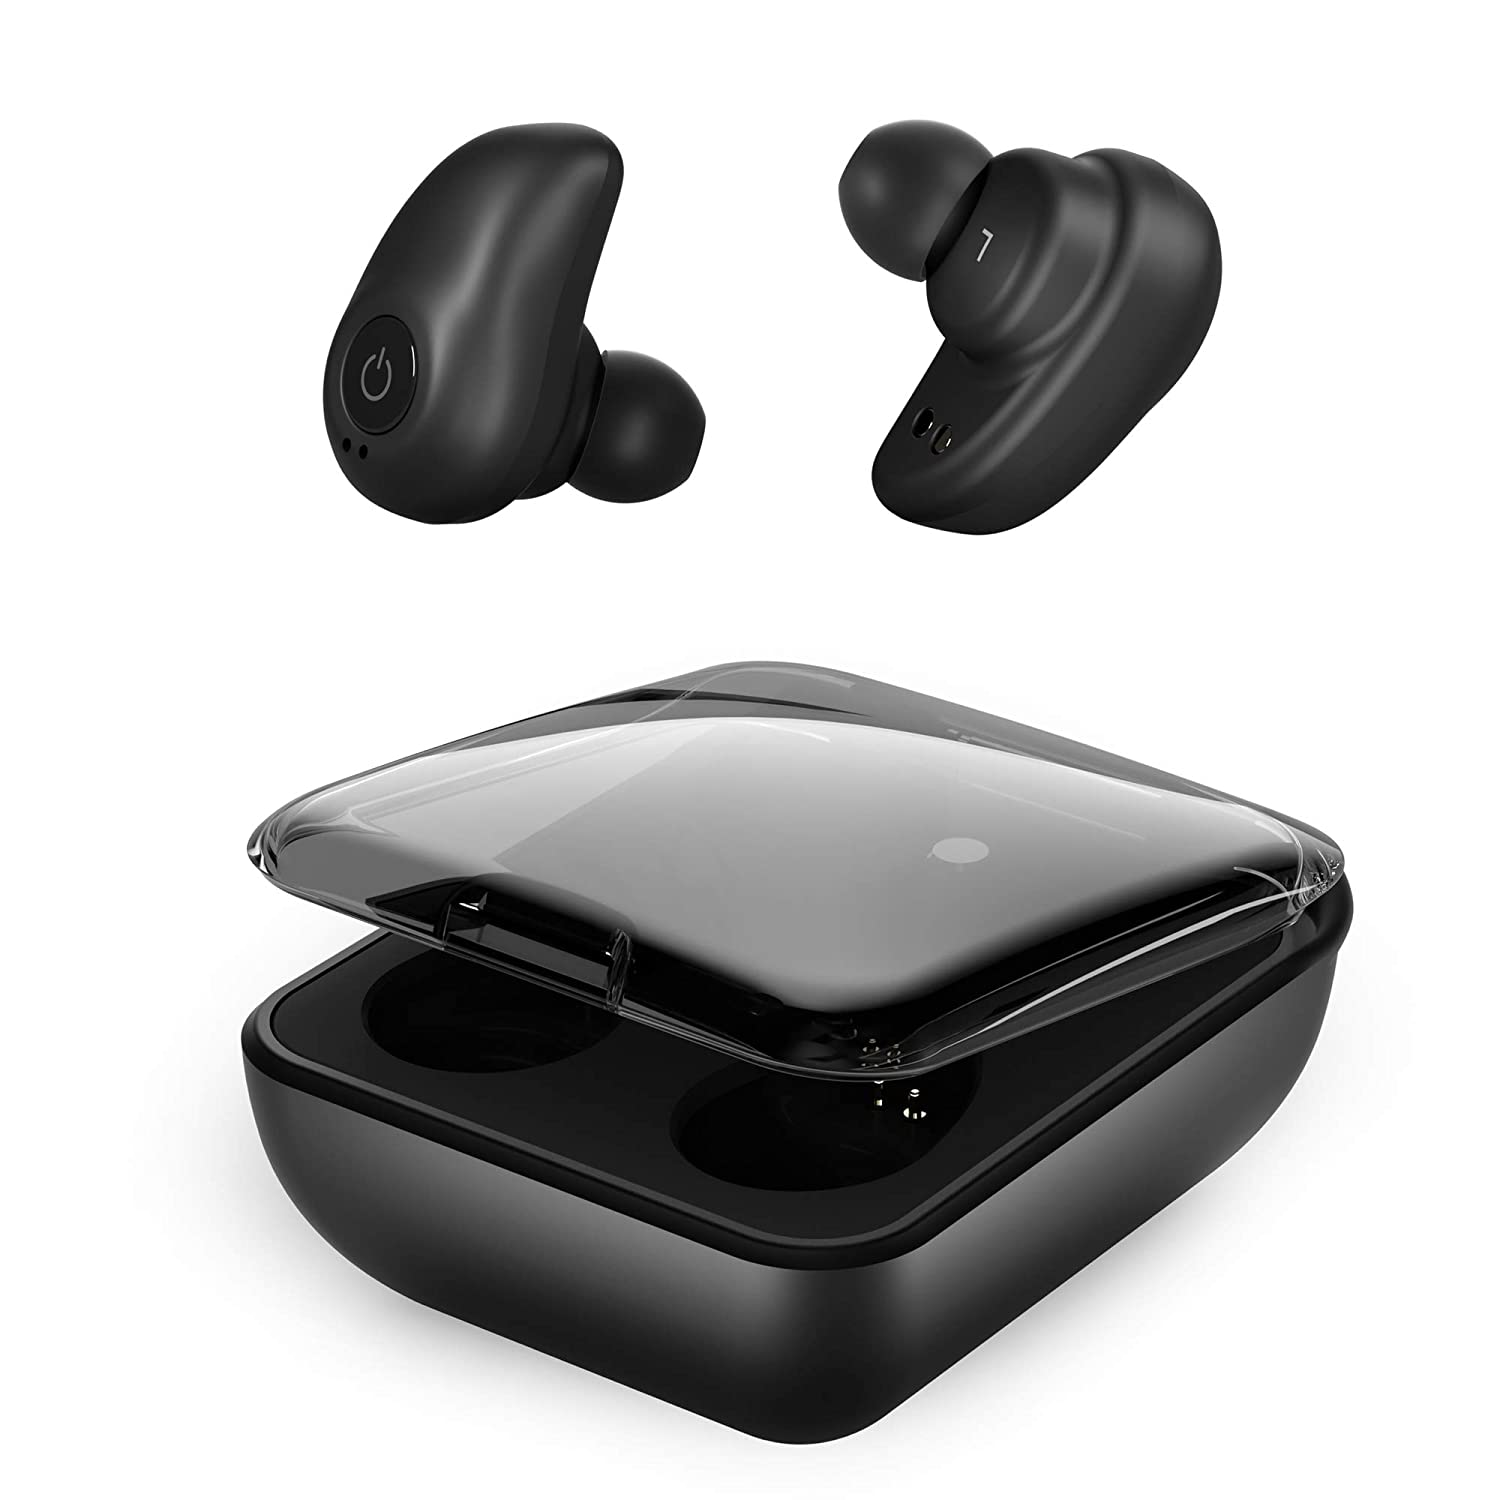 Bluetooth Wireless Earbuds for Andriod iPhone, TWS Bluetooth 5.0 Cordless Headphones Auto Pairing Earphones with Mic, 72H Cyclic Playtime Headset Single Twin Mode, 2000Mah Magnetic Charging Case